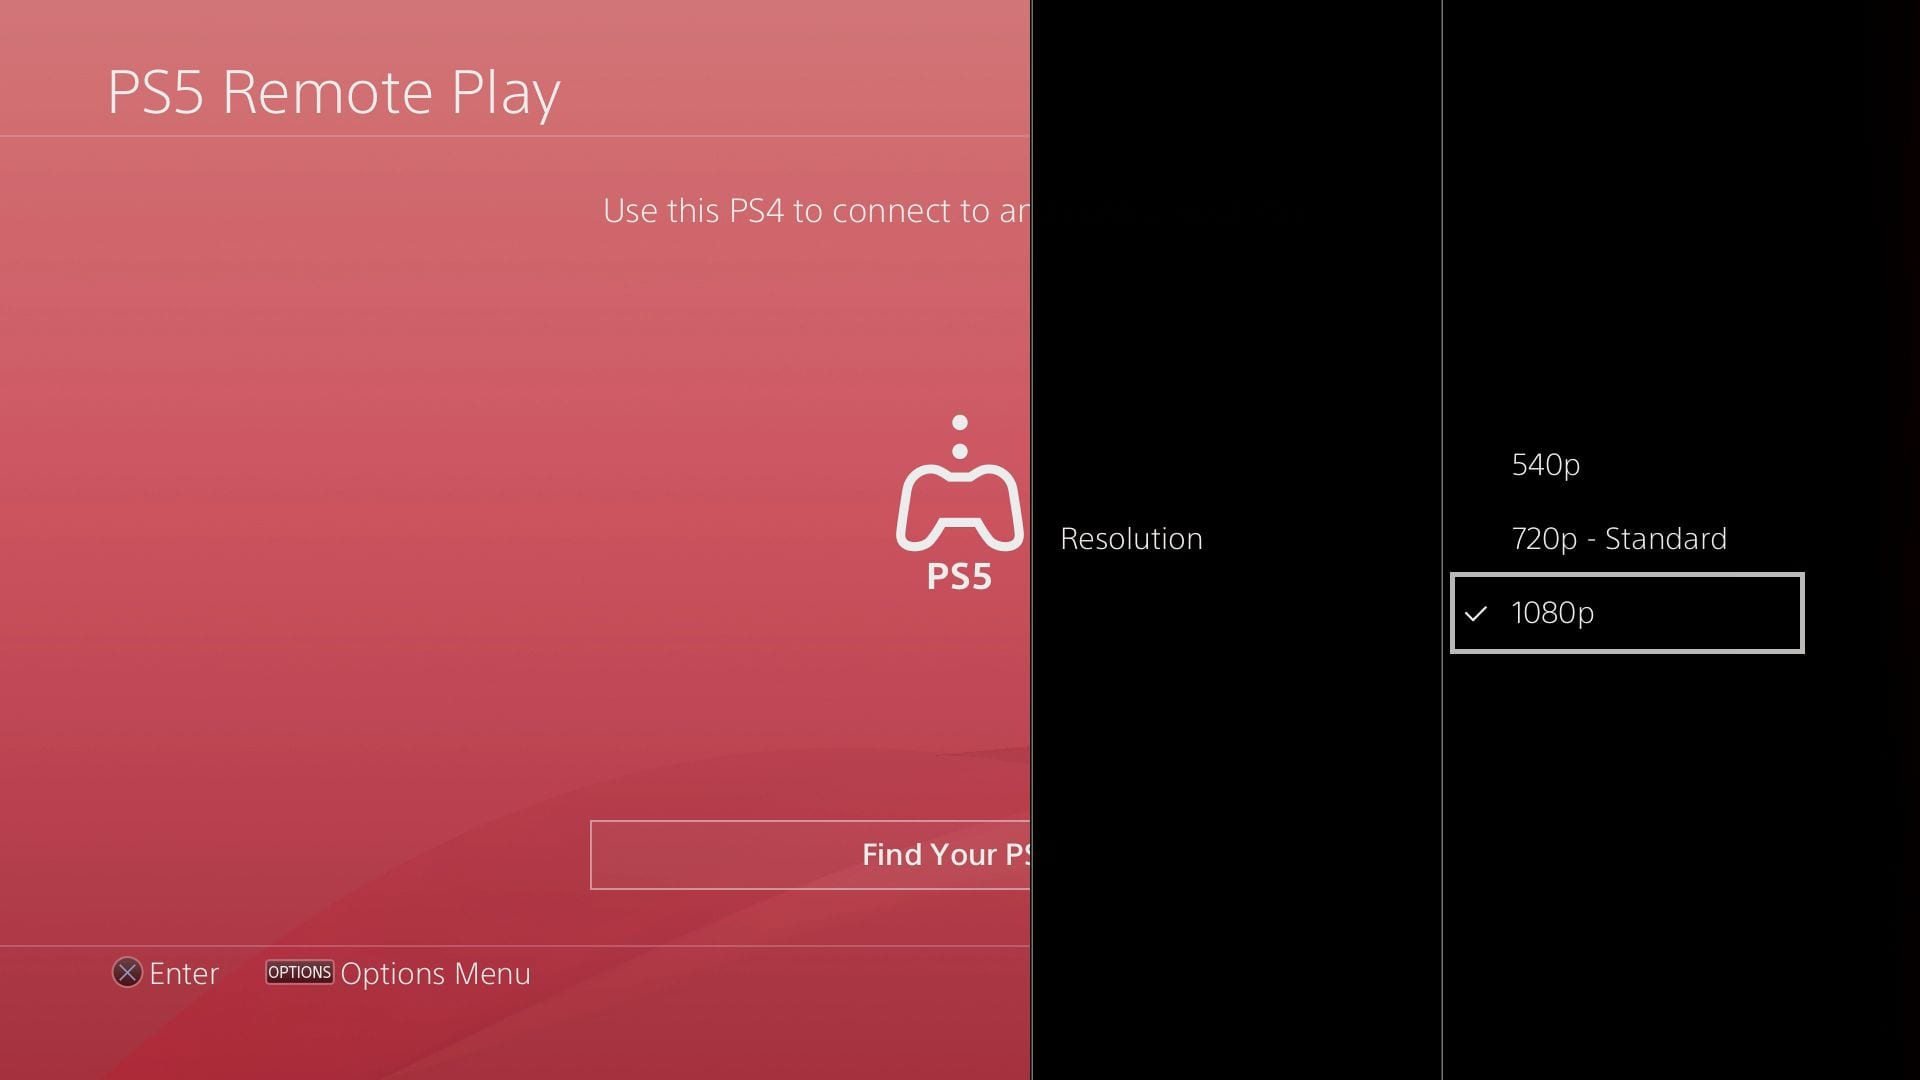 PS5 Remote Play App Released on PS4